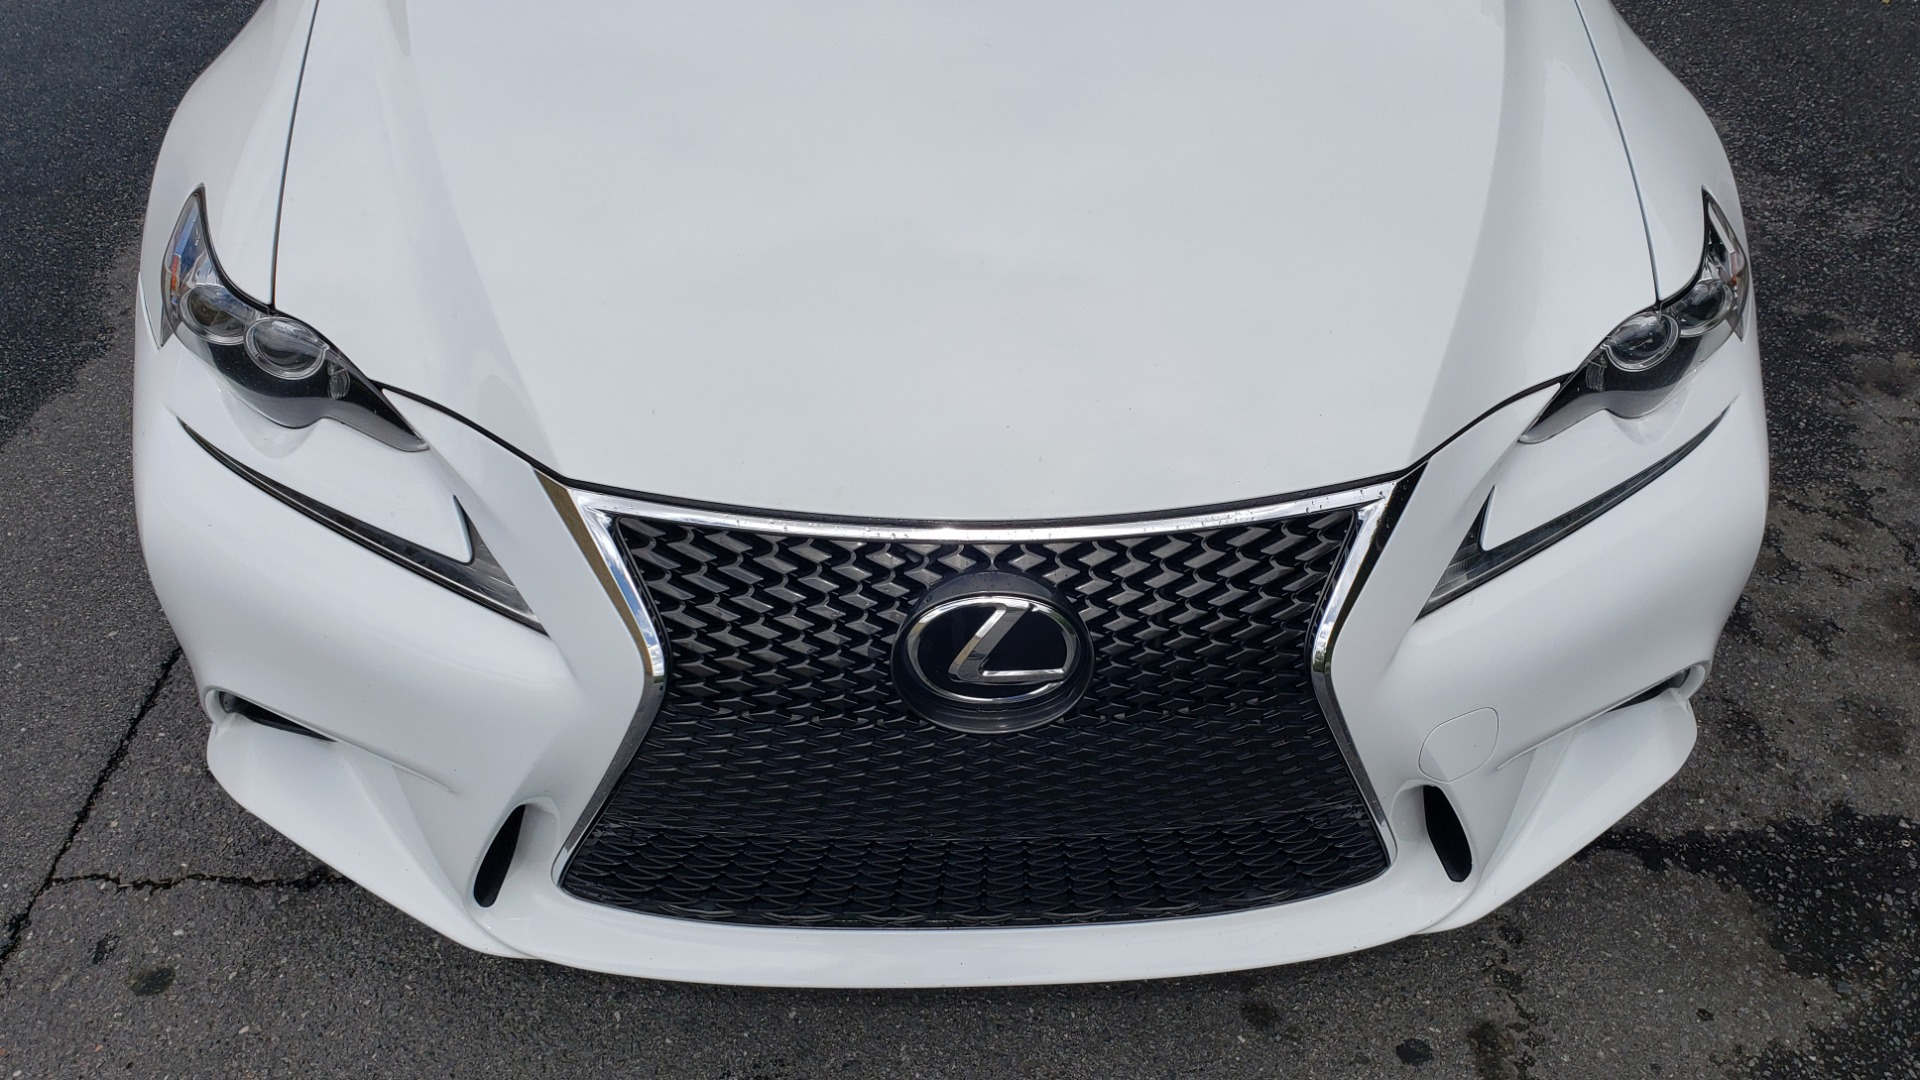 Used 2014 Lexus IS 350 F-SPORT / NAV / SUNROOF / REARVIEW / BSM / MARK LEV SND for sale Sold at Formula Imports in Charlotte NC 28227 14